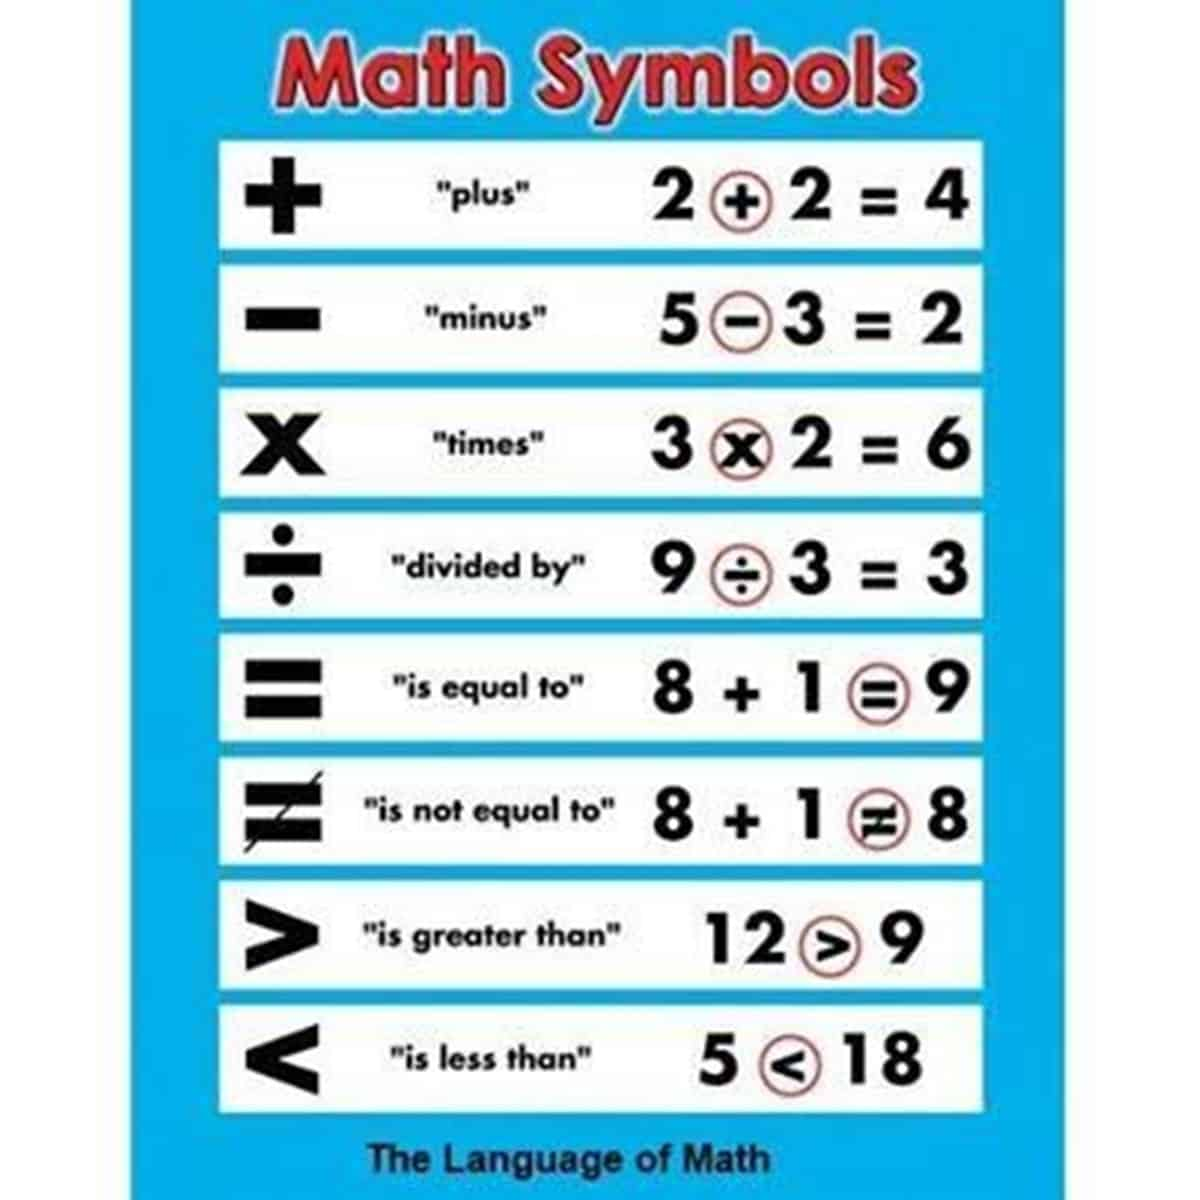 Math symbols in English